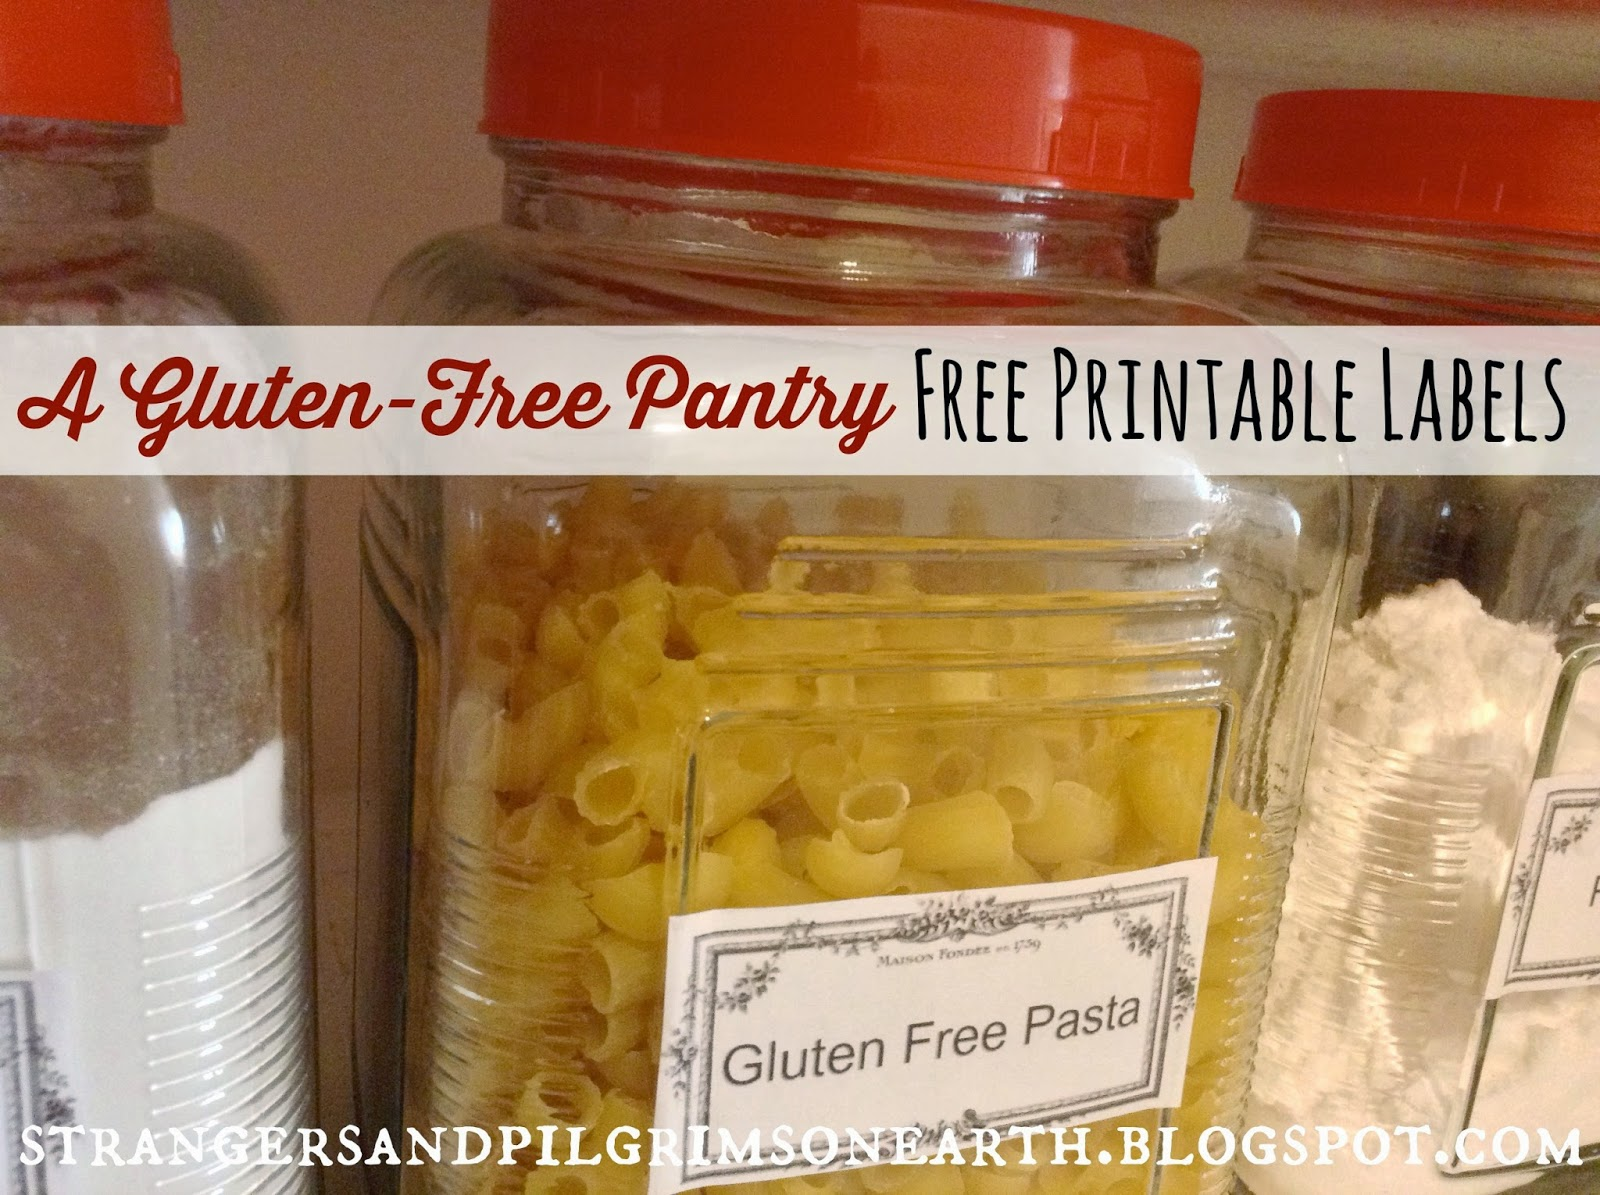 amazon decadent pantry glutino pack boxes mix free pamela cake gluten of grocery chocolate s dp com ounce mixes